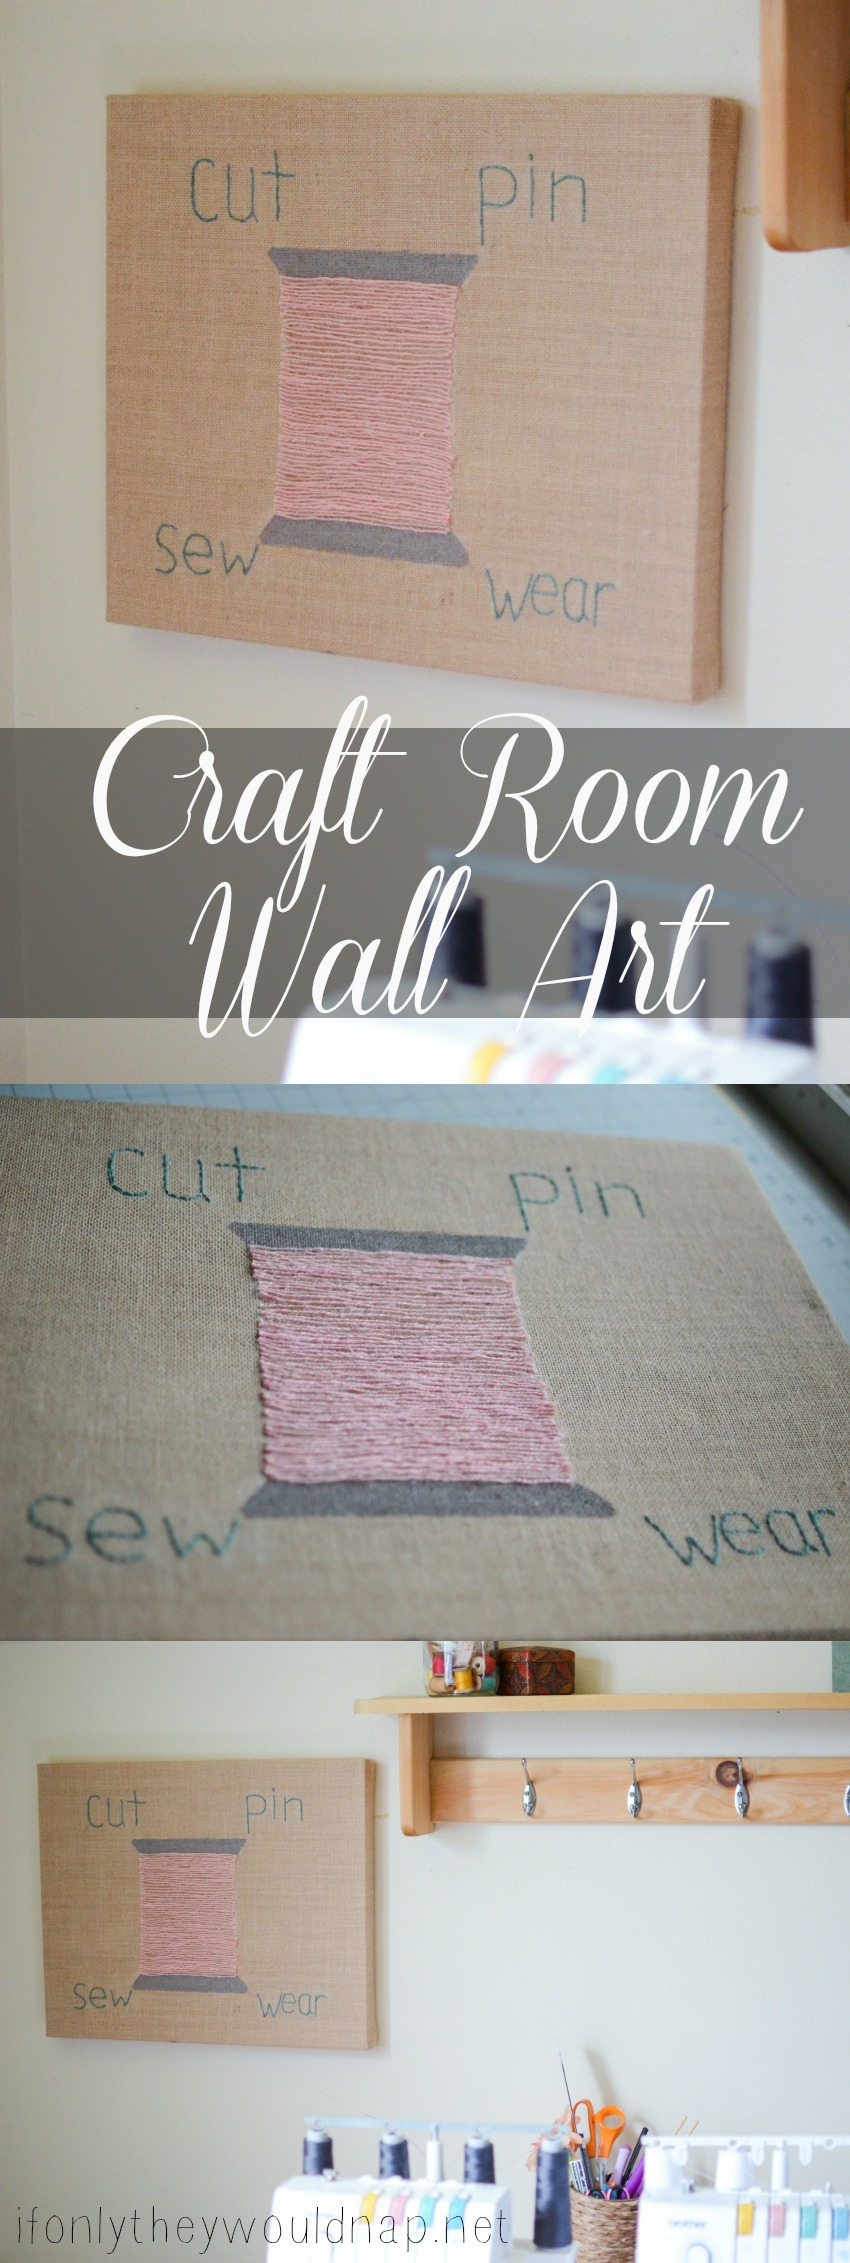 Make Your Own Craft Room Wall Art